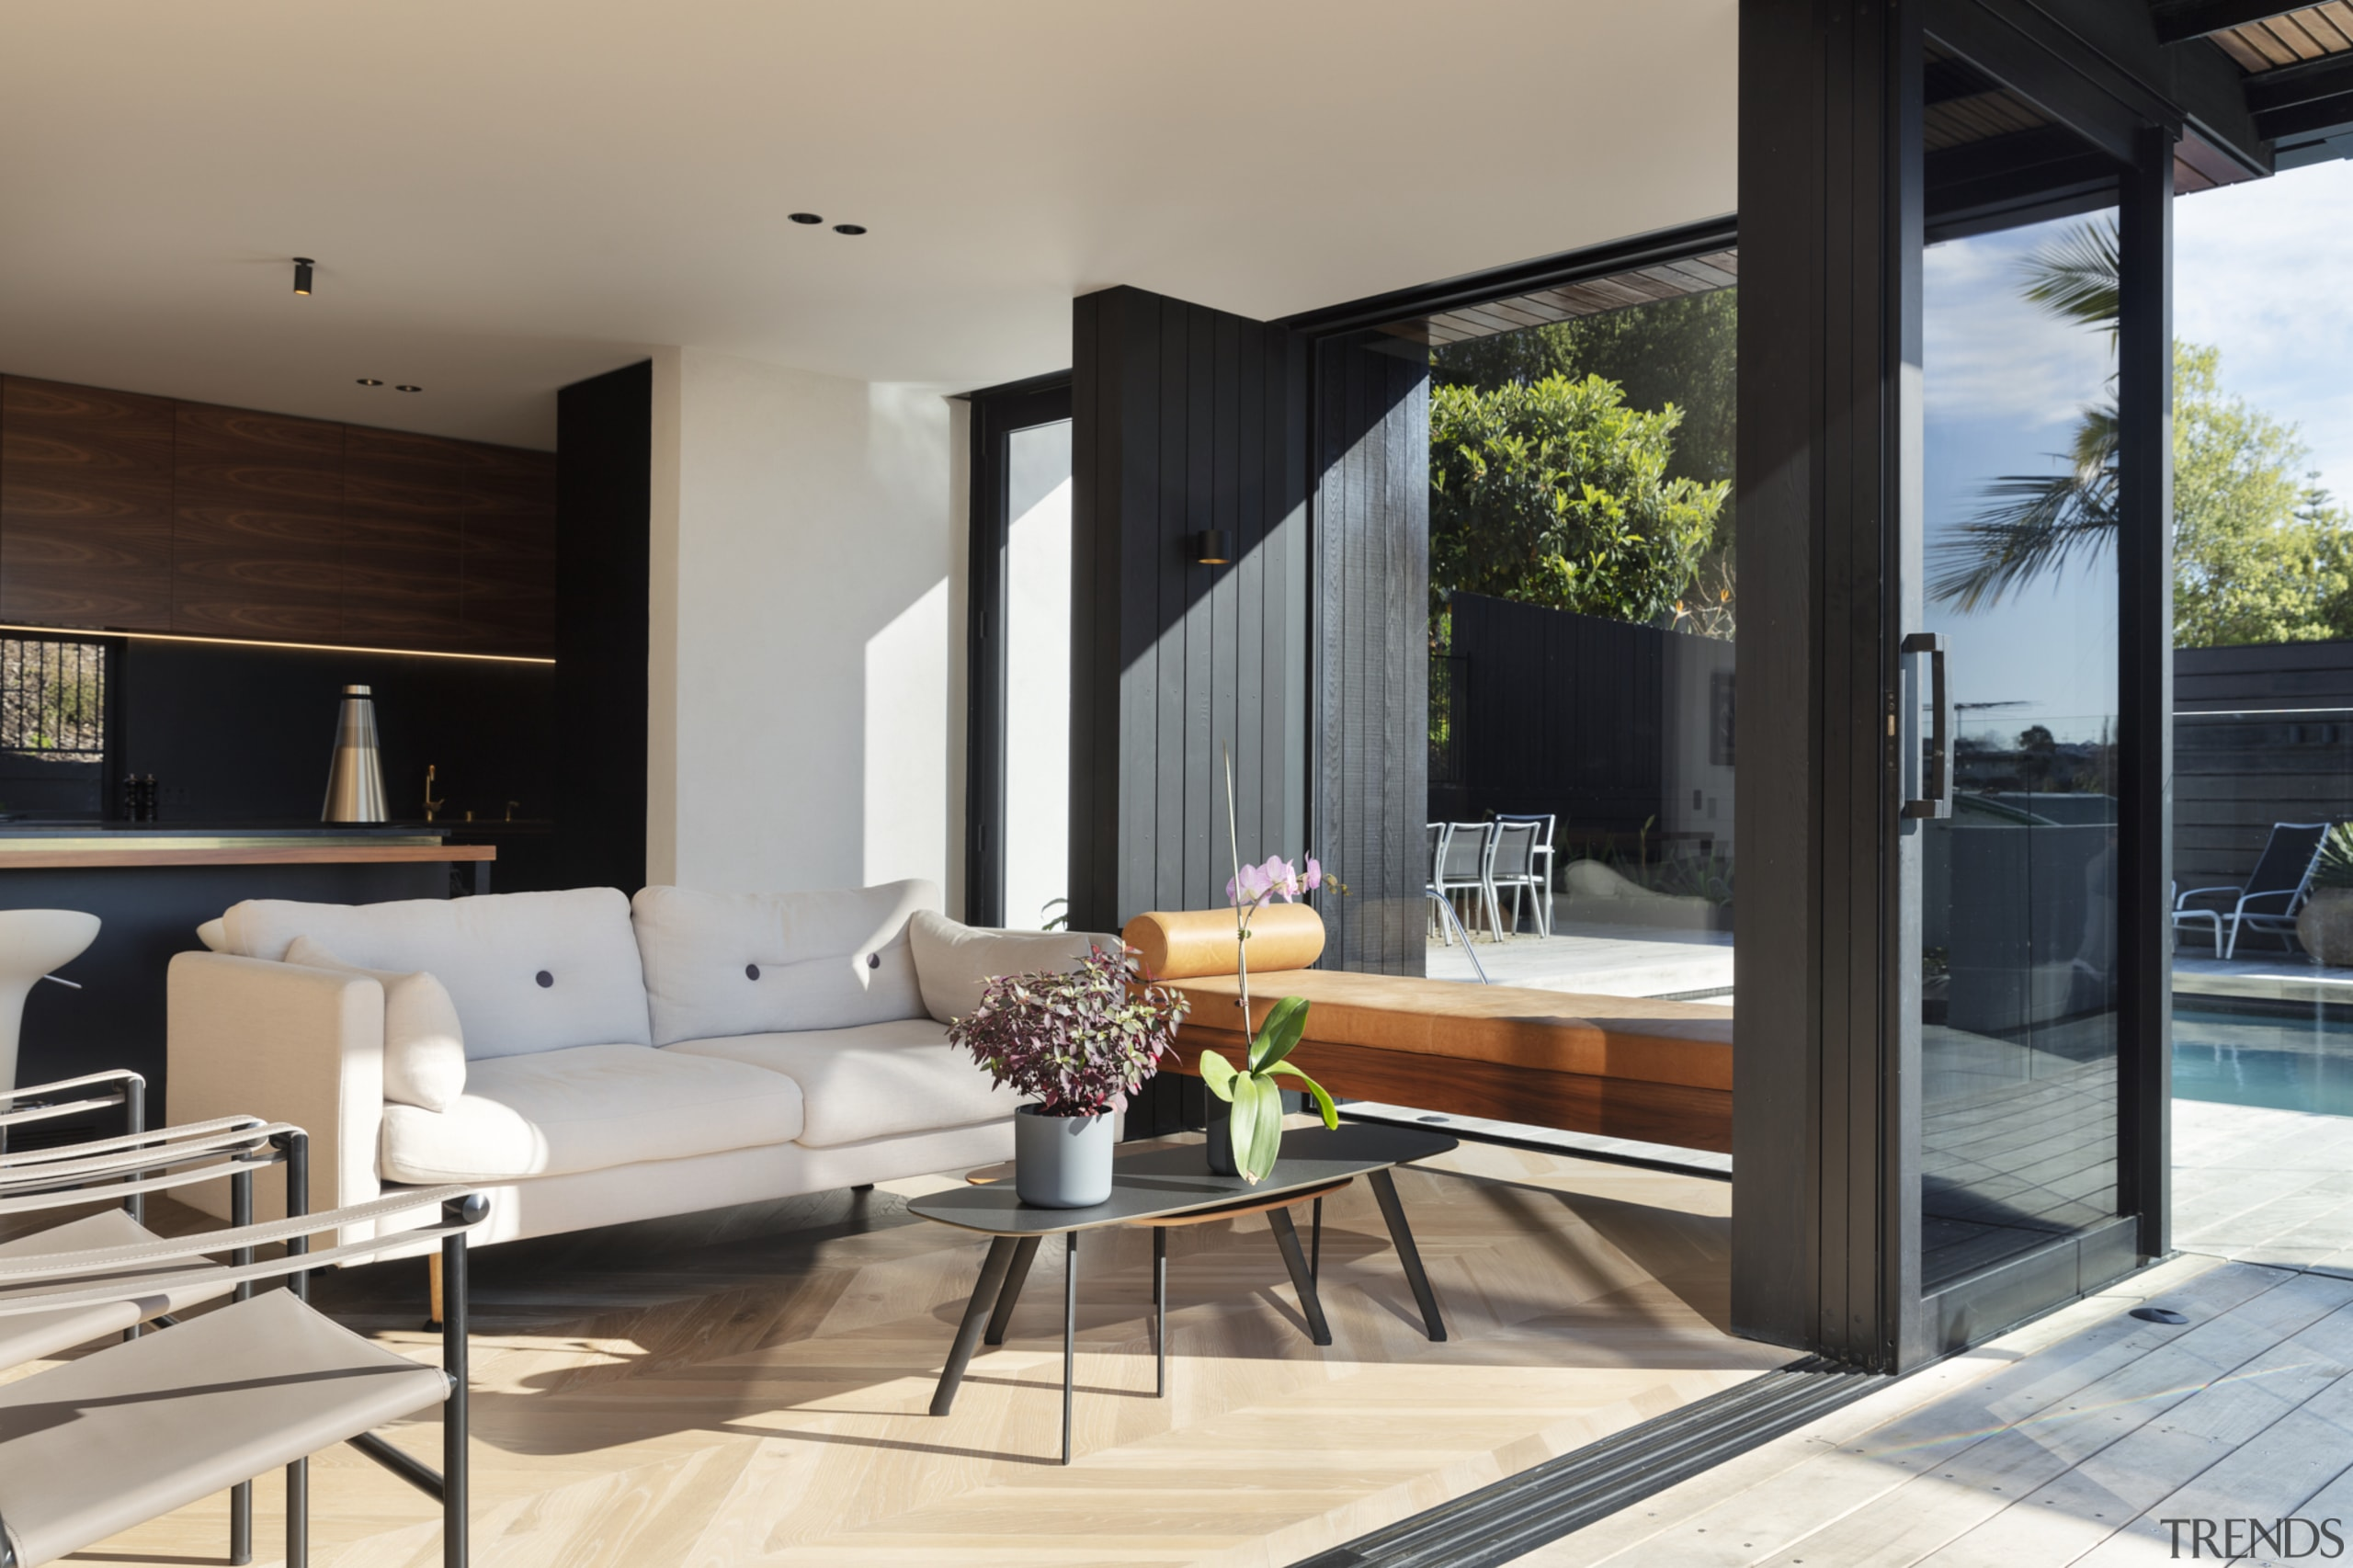 1970's home becomes a modern entertainer's dream - apartment, architecture, building, ceiling, coffee table, design, door, floor, flooring, furniture, hardwood, home, house, interior design, living room, property, real estate, room, table, window, wood flooring, gray, black